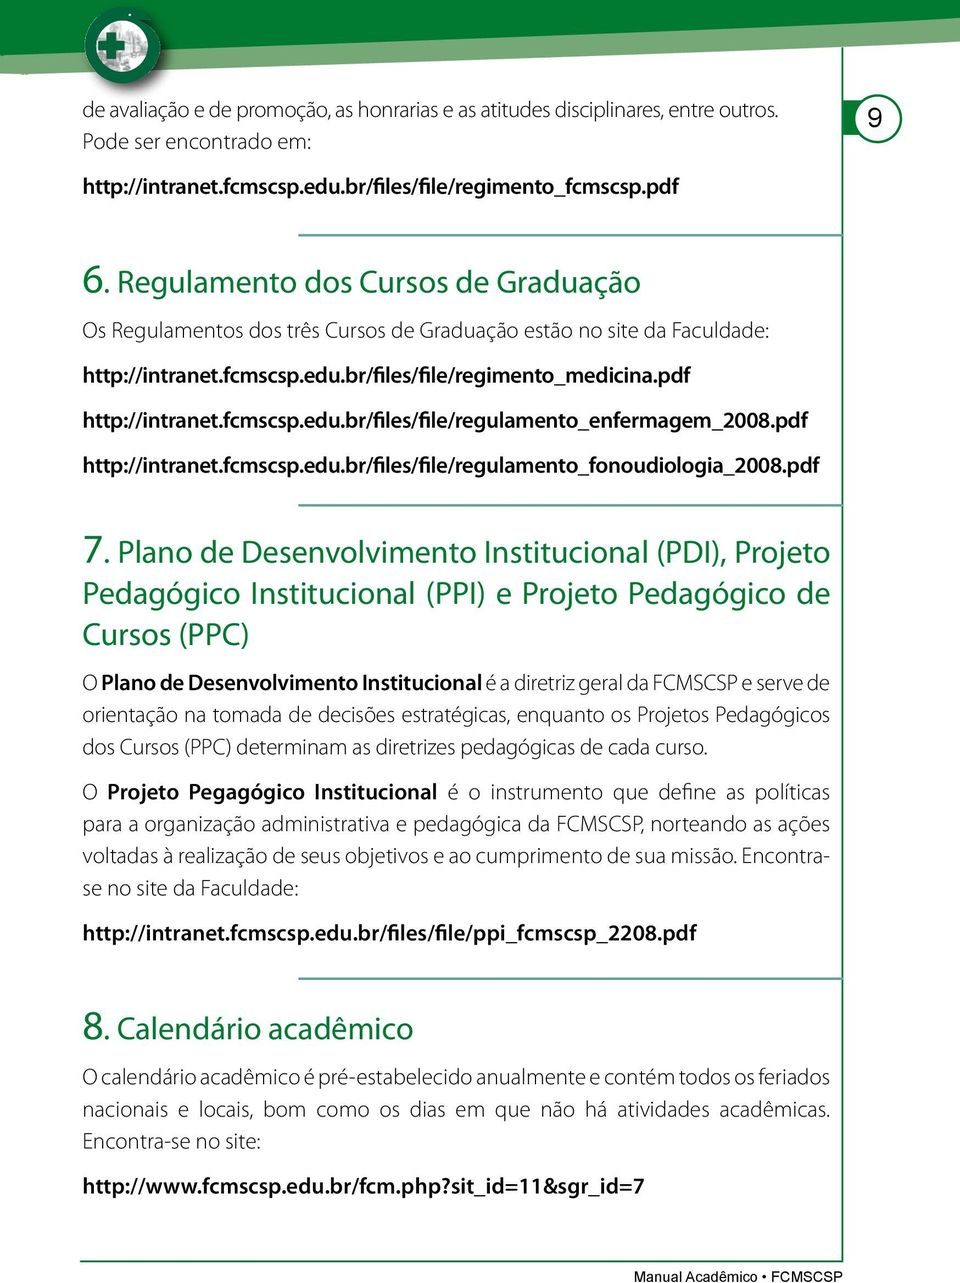 pdf http://intranet.fcmscsp.edu.br/files/file/regulamento_fonoudiologia_2008.pdf 7.